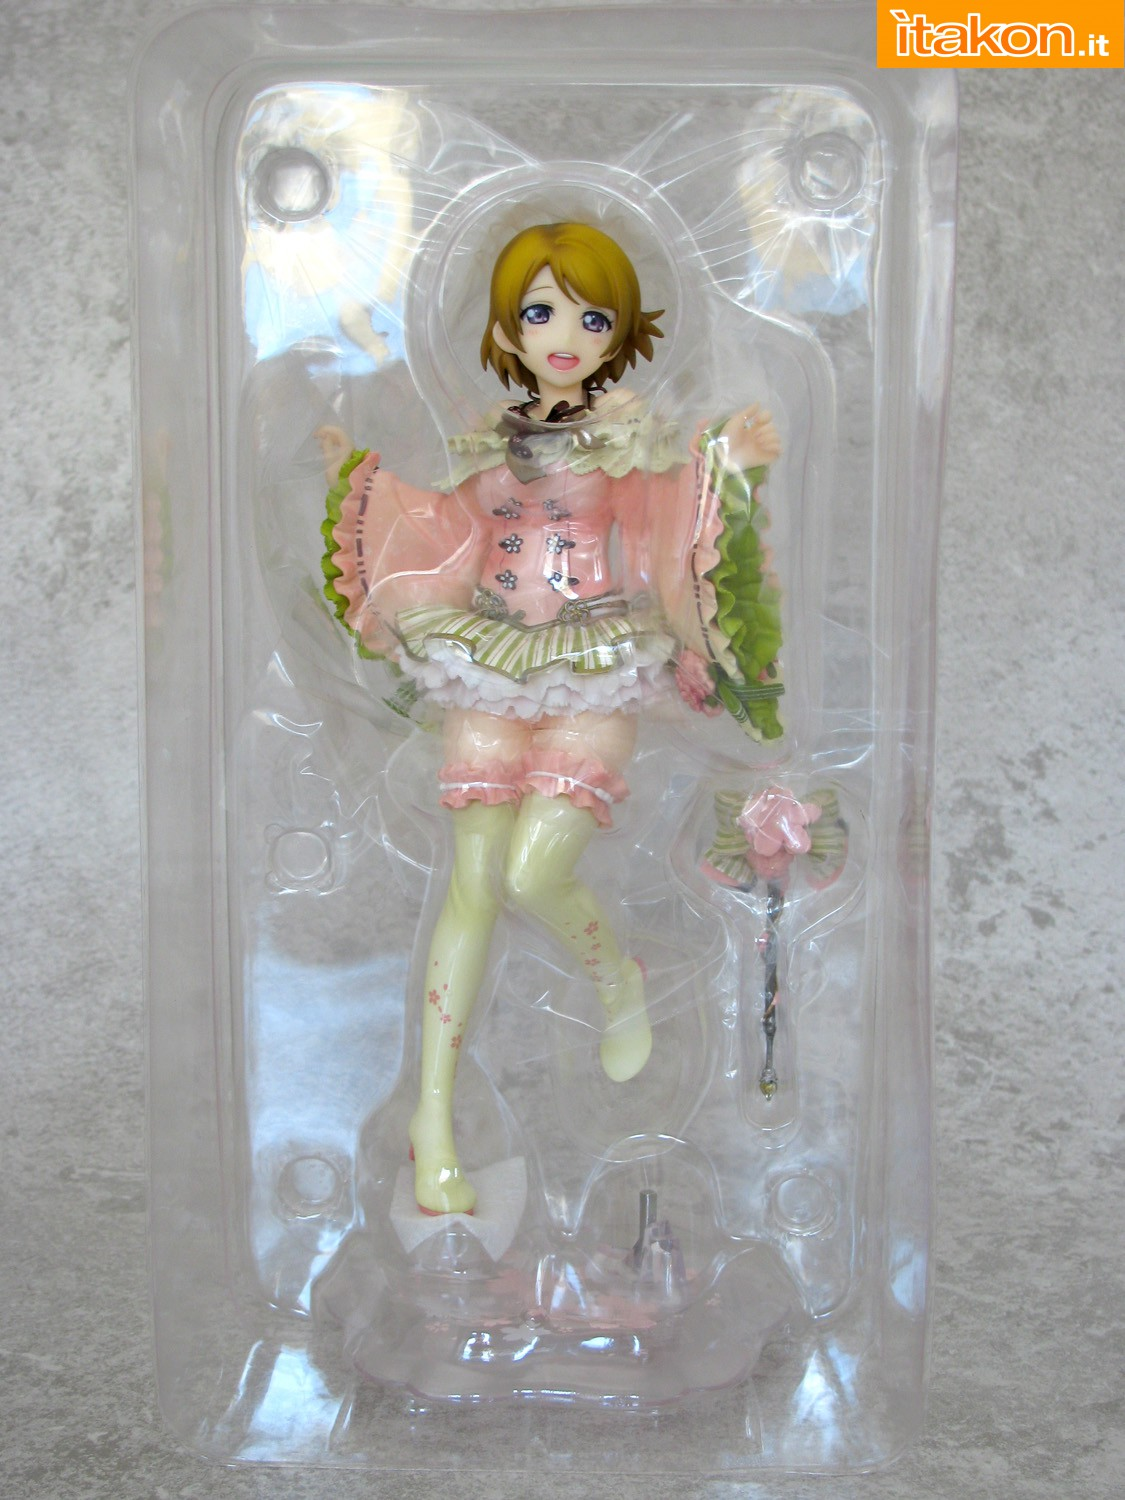 Link a 003 Hanayo Koizkumi March Love Live ALTER recensione